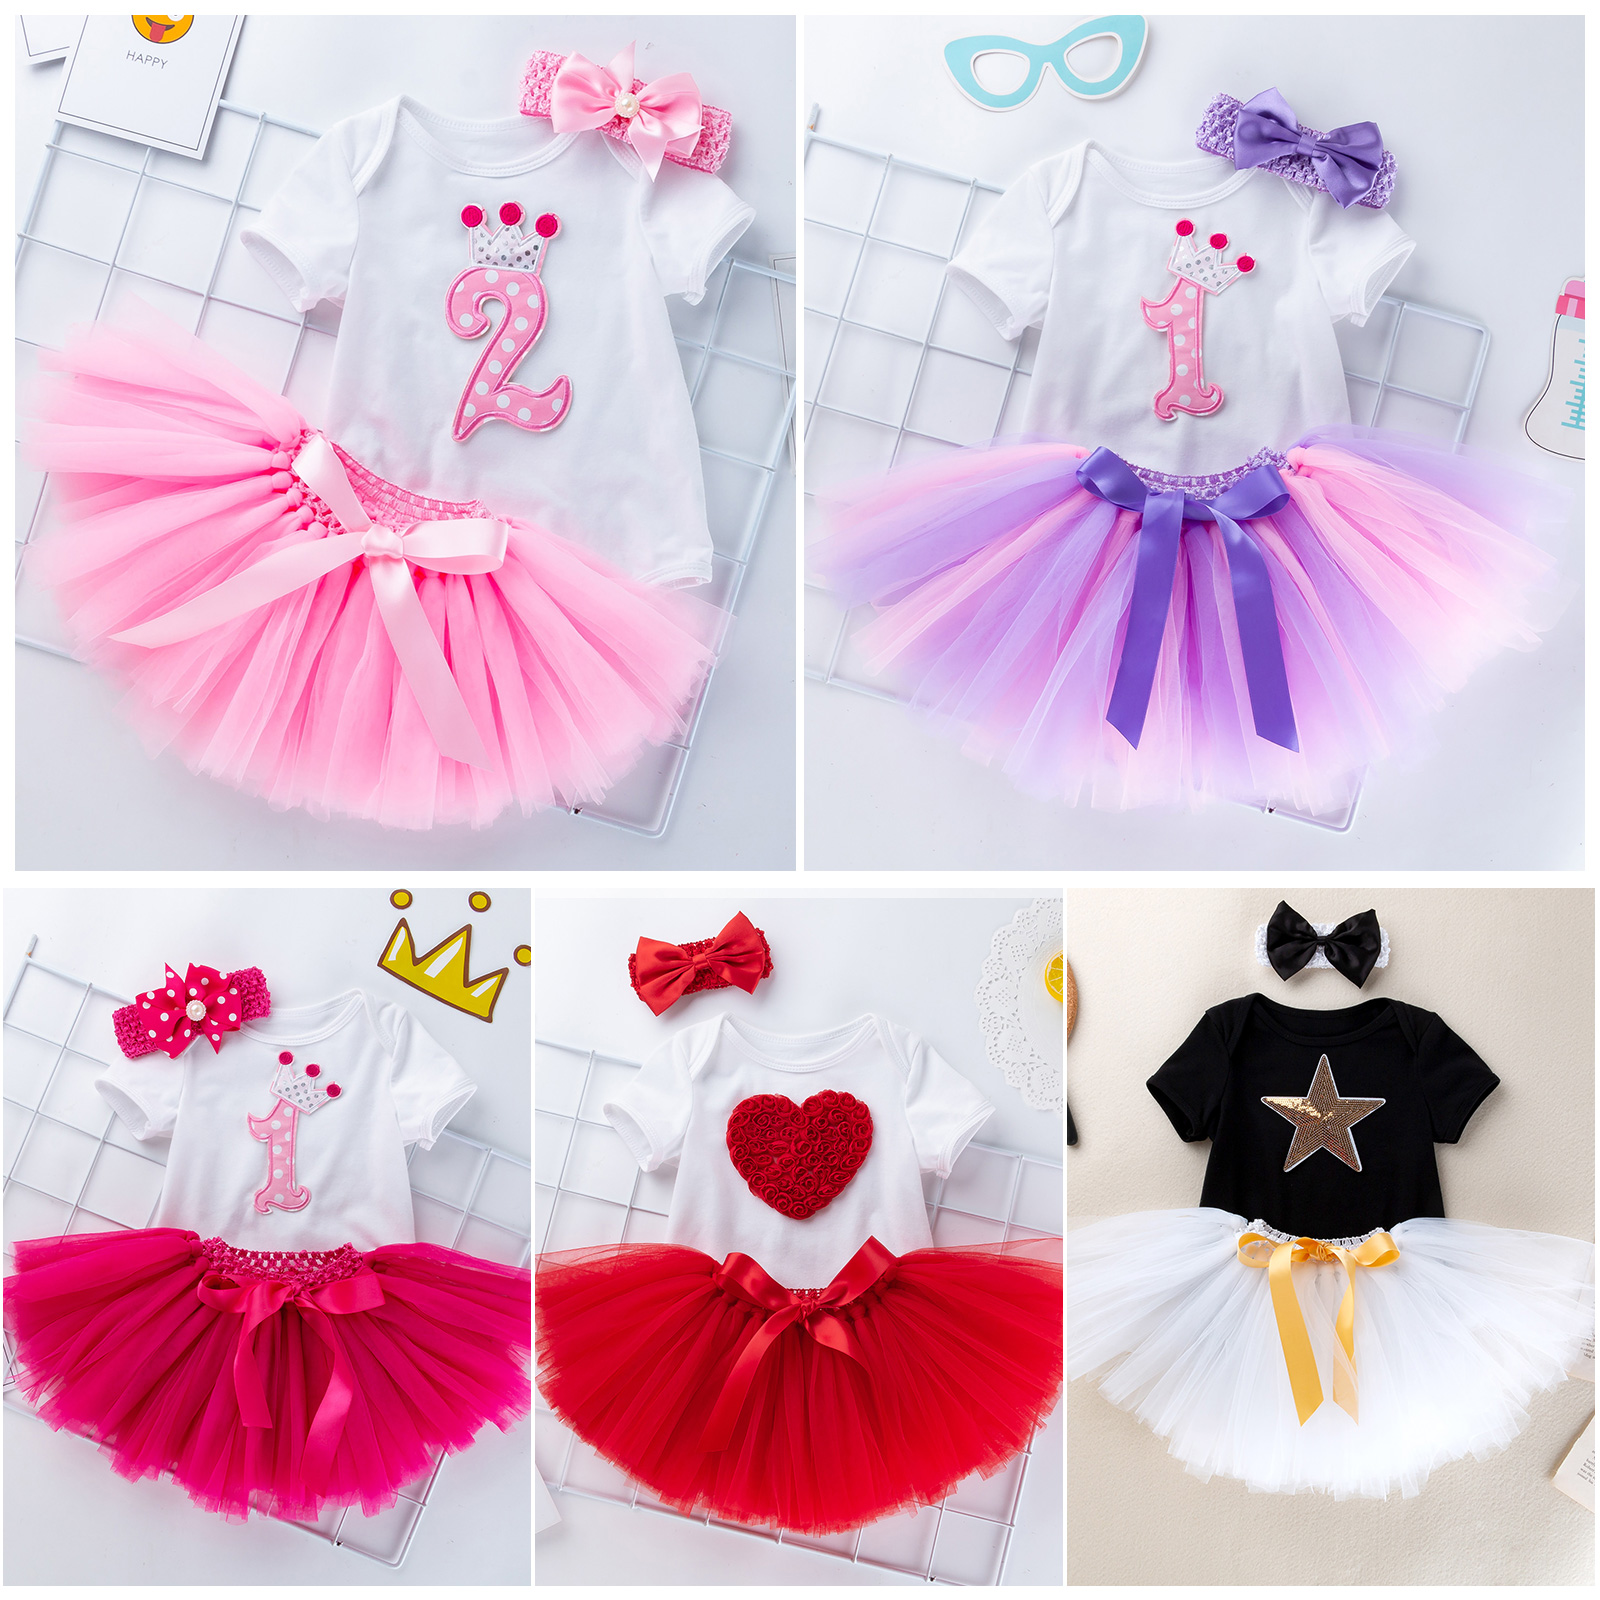 1st Birthday Dress For Baby Girl.Details About 3pcs Infant Baby Girls 1st Birthday Dress Outfits Romper Tutu Skirt Clothes